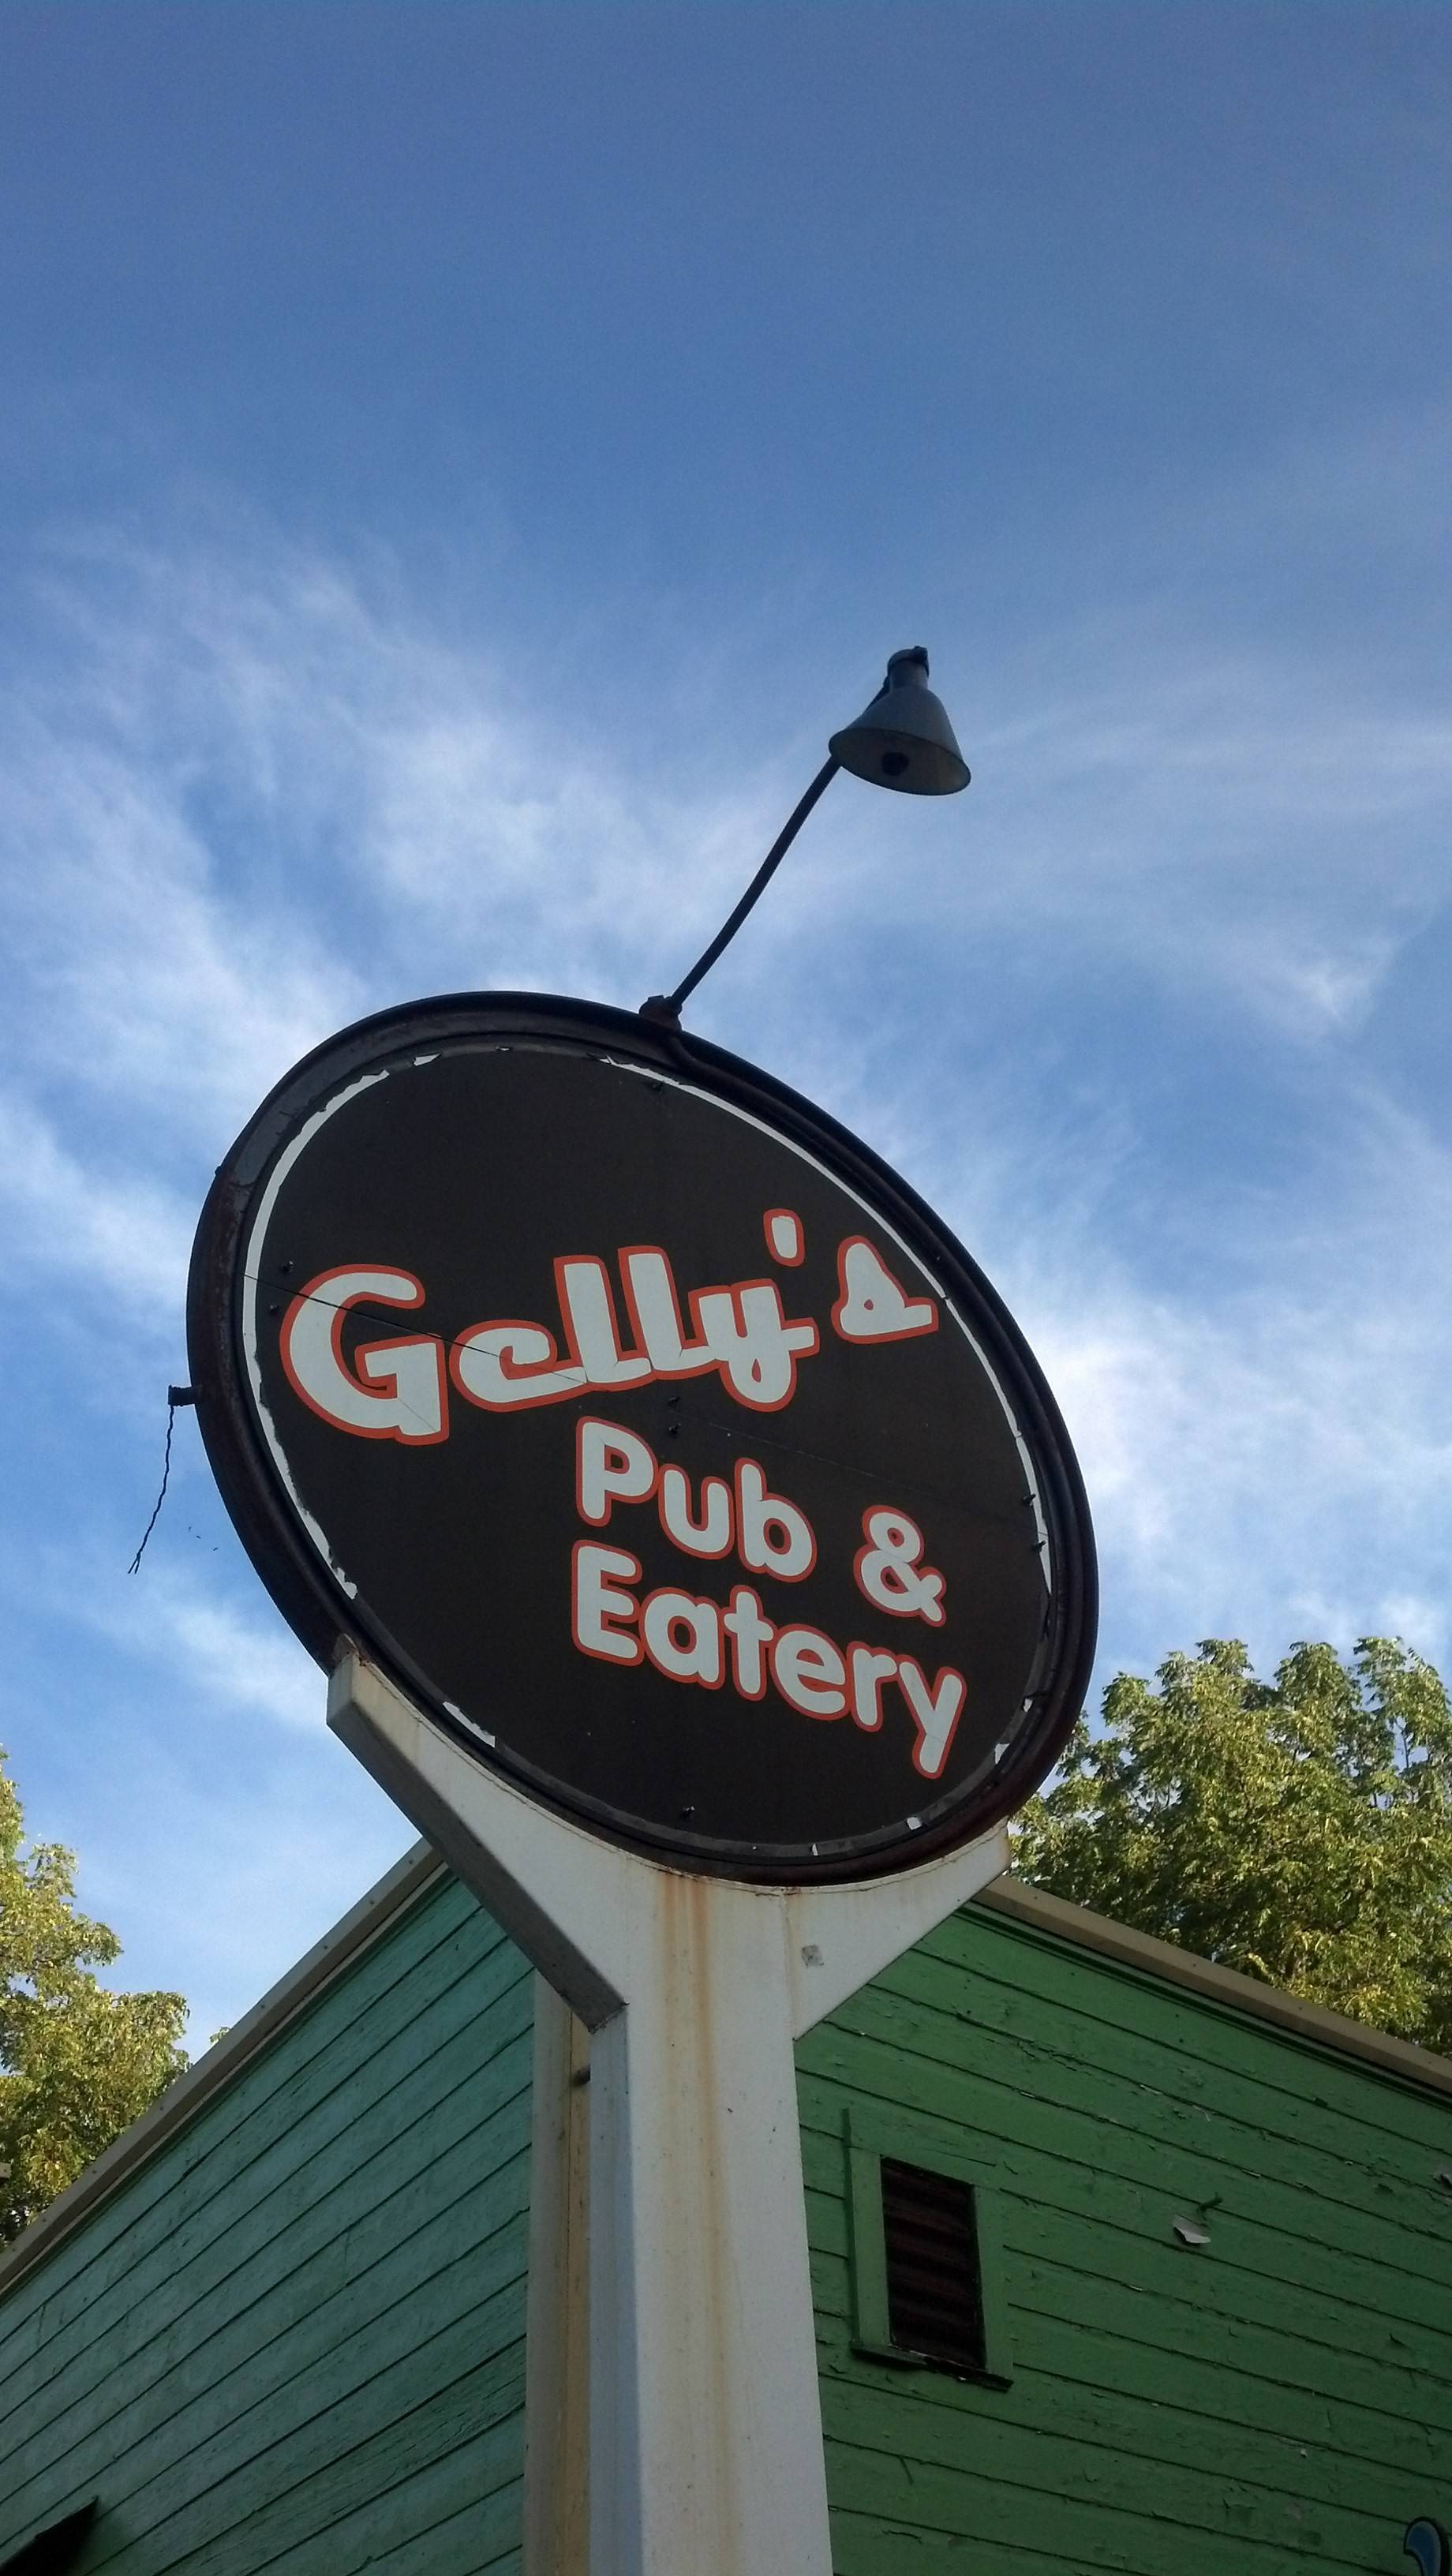 Gelly's Pub & Eatery in Stockholm, Wis., is a friendly place to stop for a hearty meal.